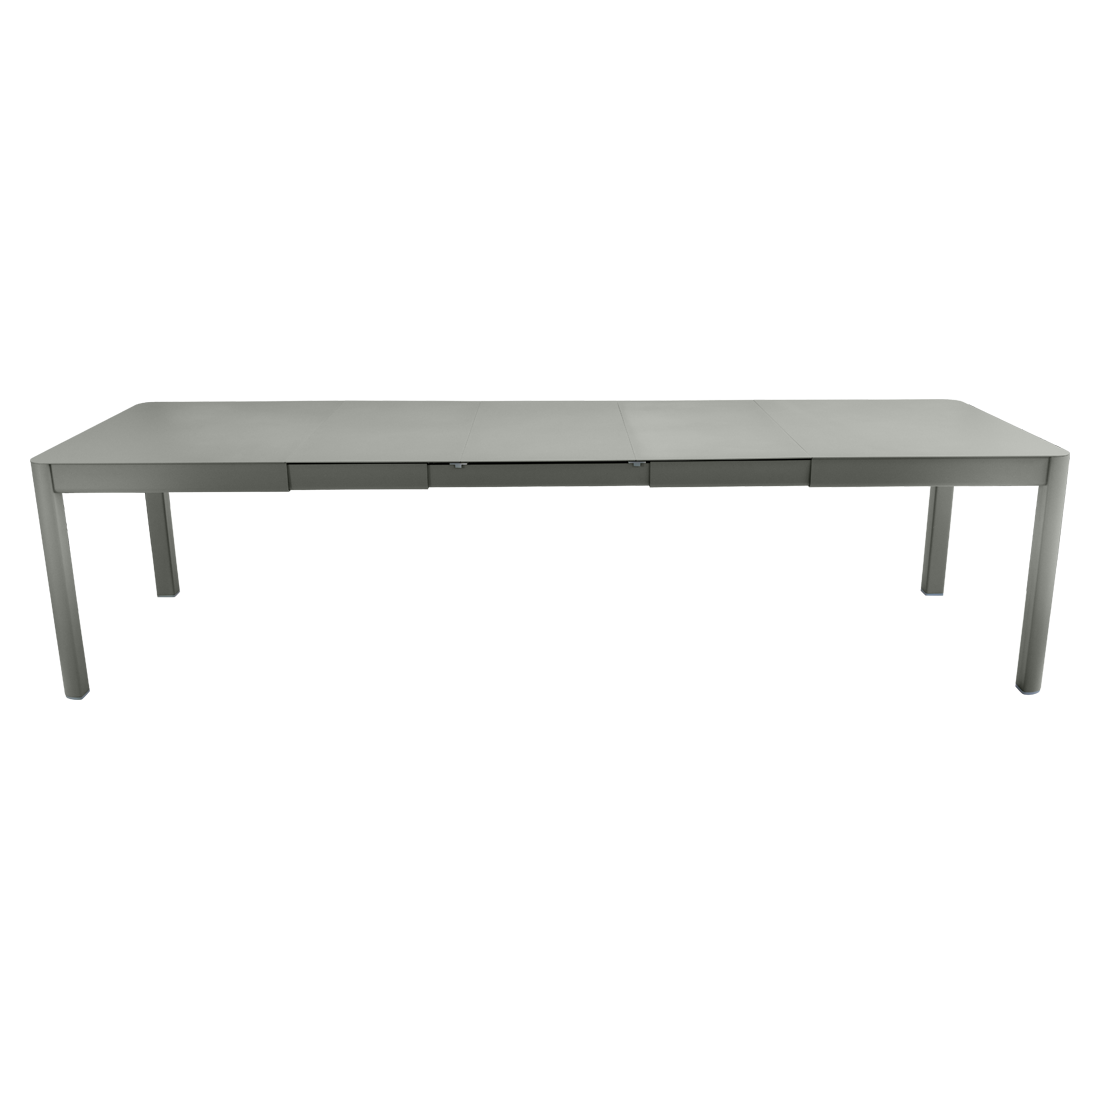 Table Ribambelle XL 3 allonges, table de jardin, mobilier de jardin